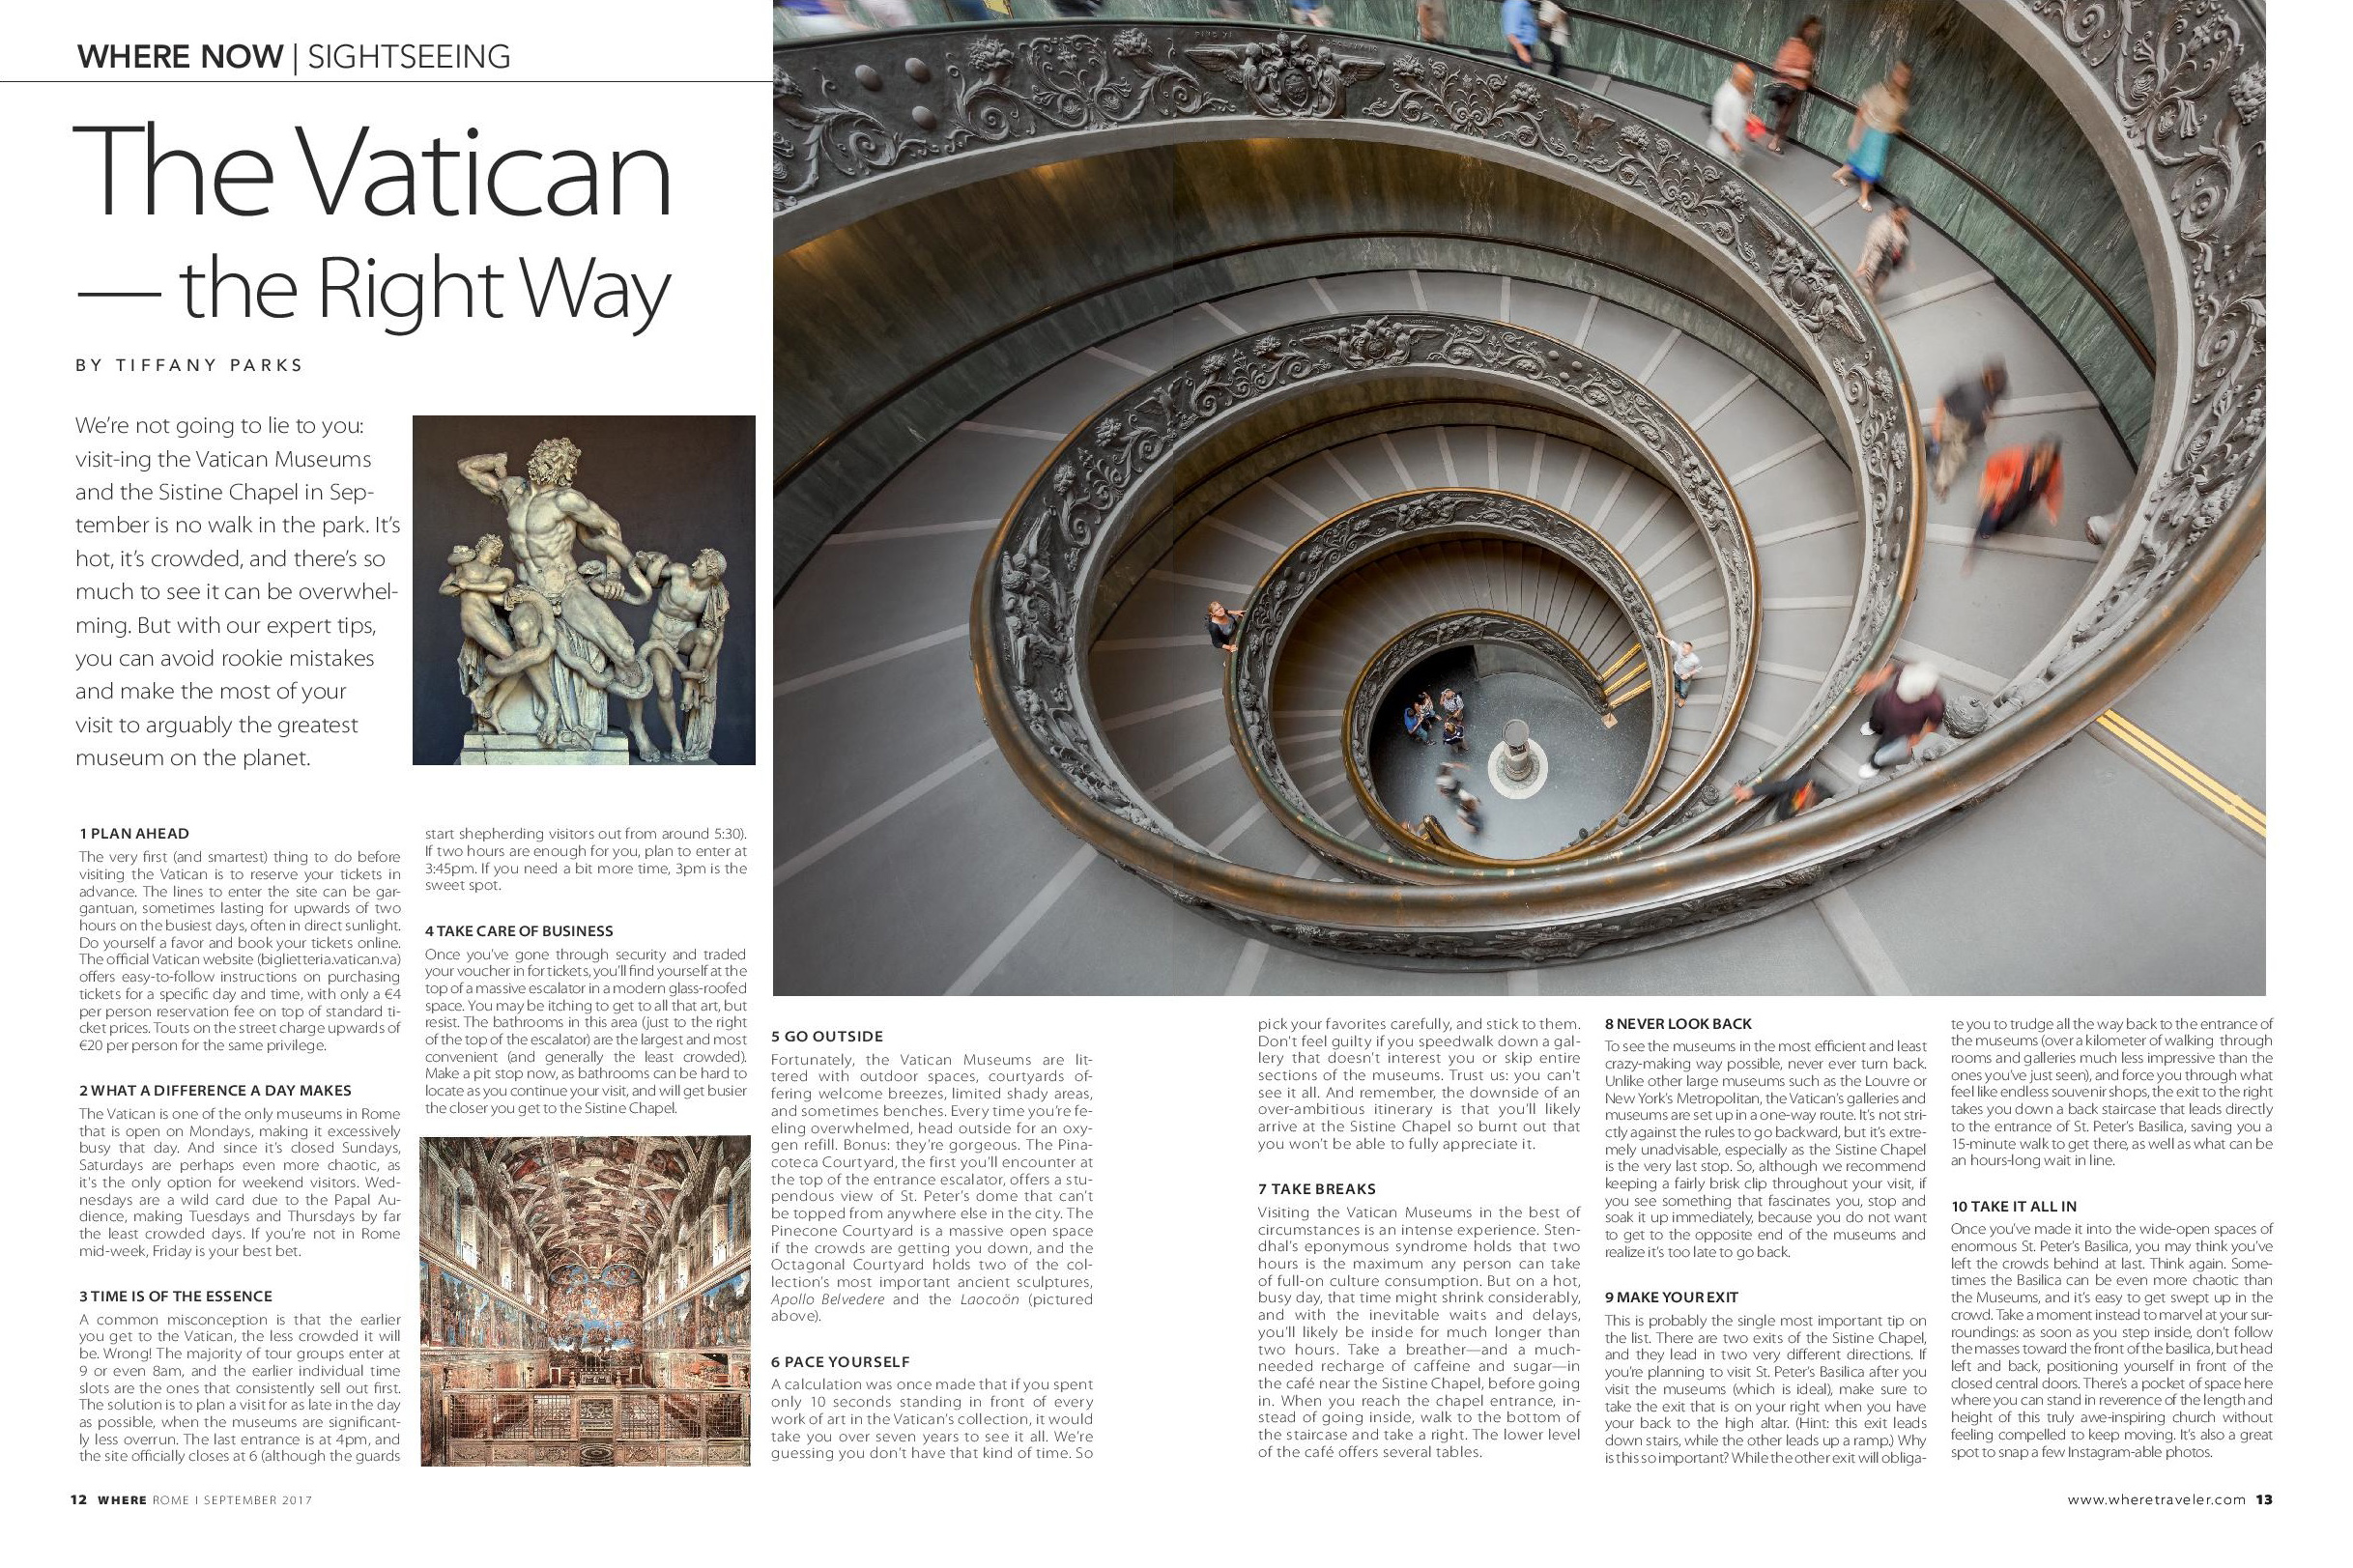 The Vatican The Right Way, Where Rome, September 2017.jpg